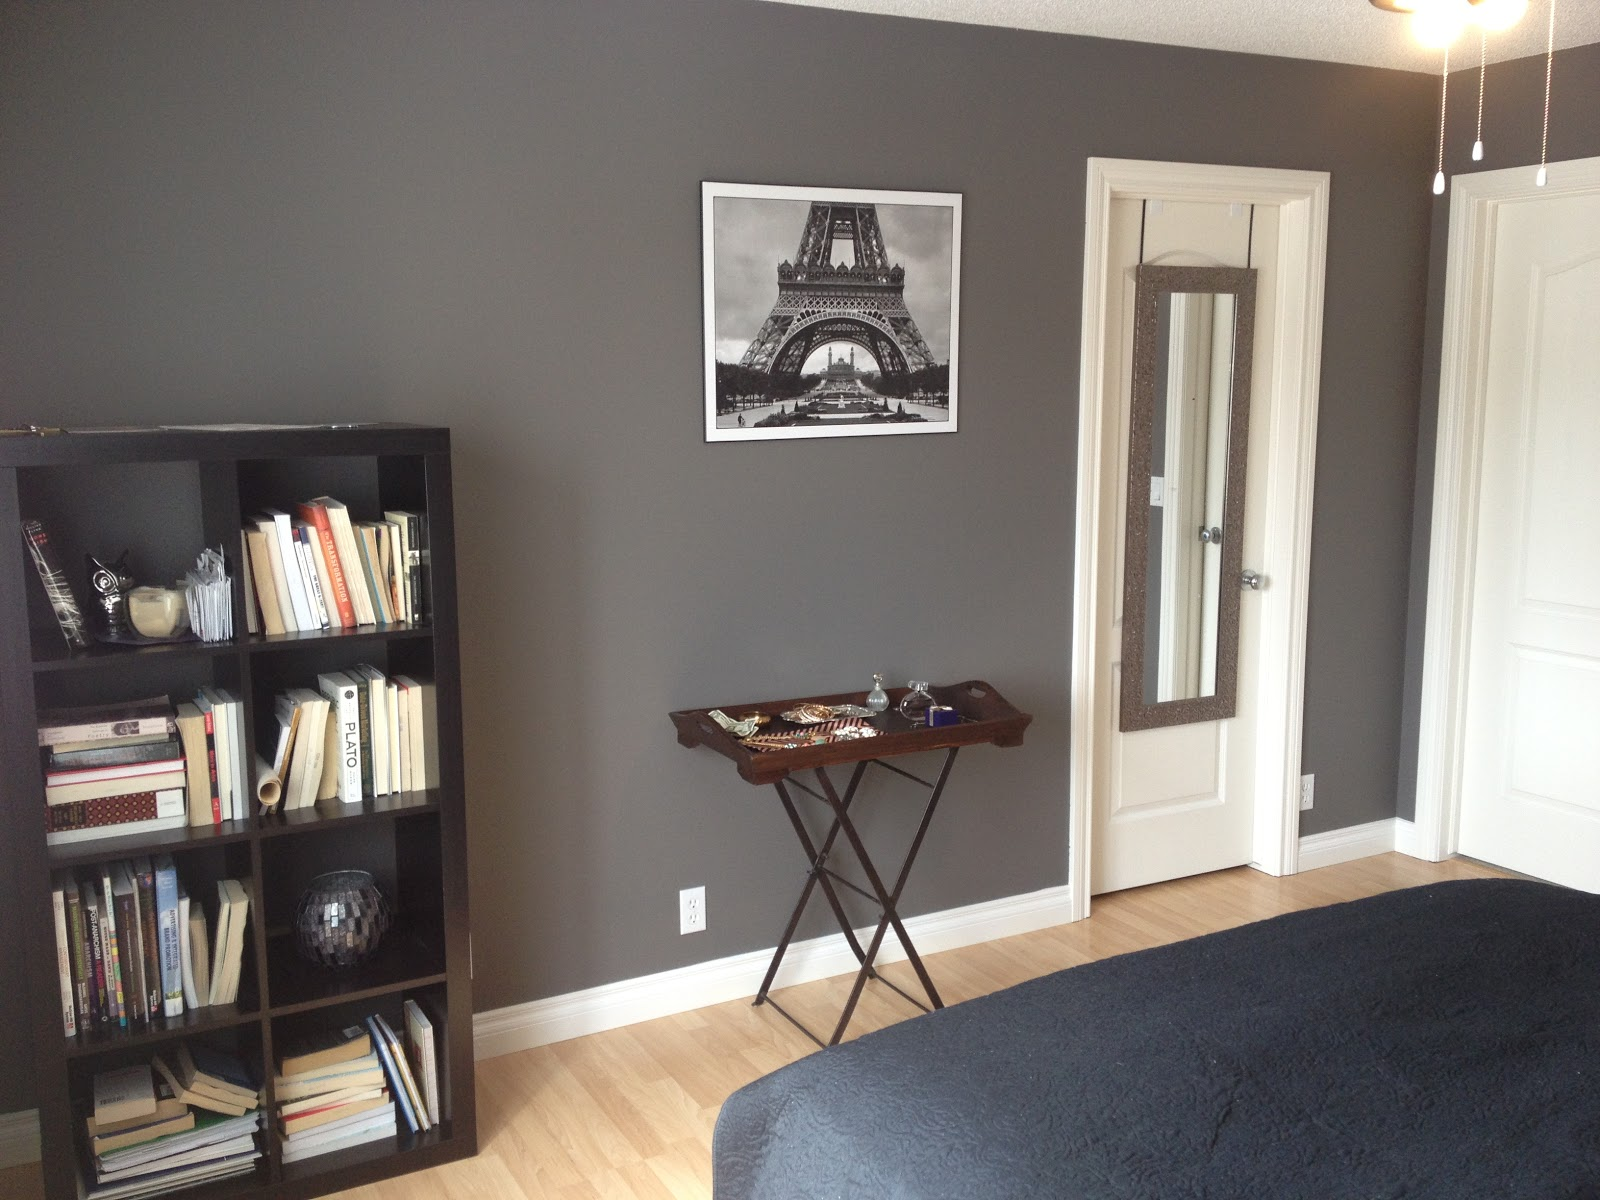 Behr mocha and living rooms on pinterest for Living room accent wall